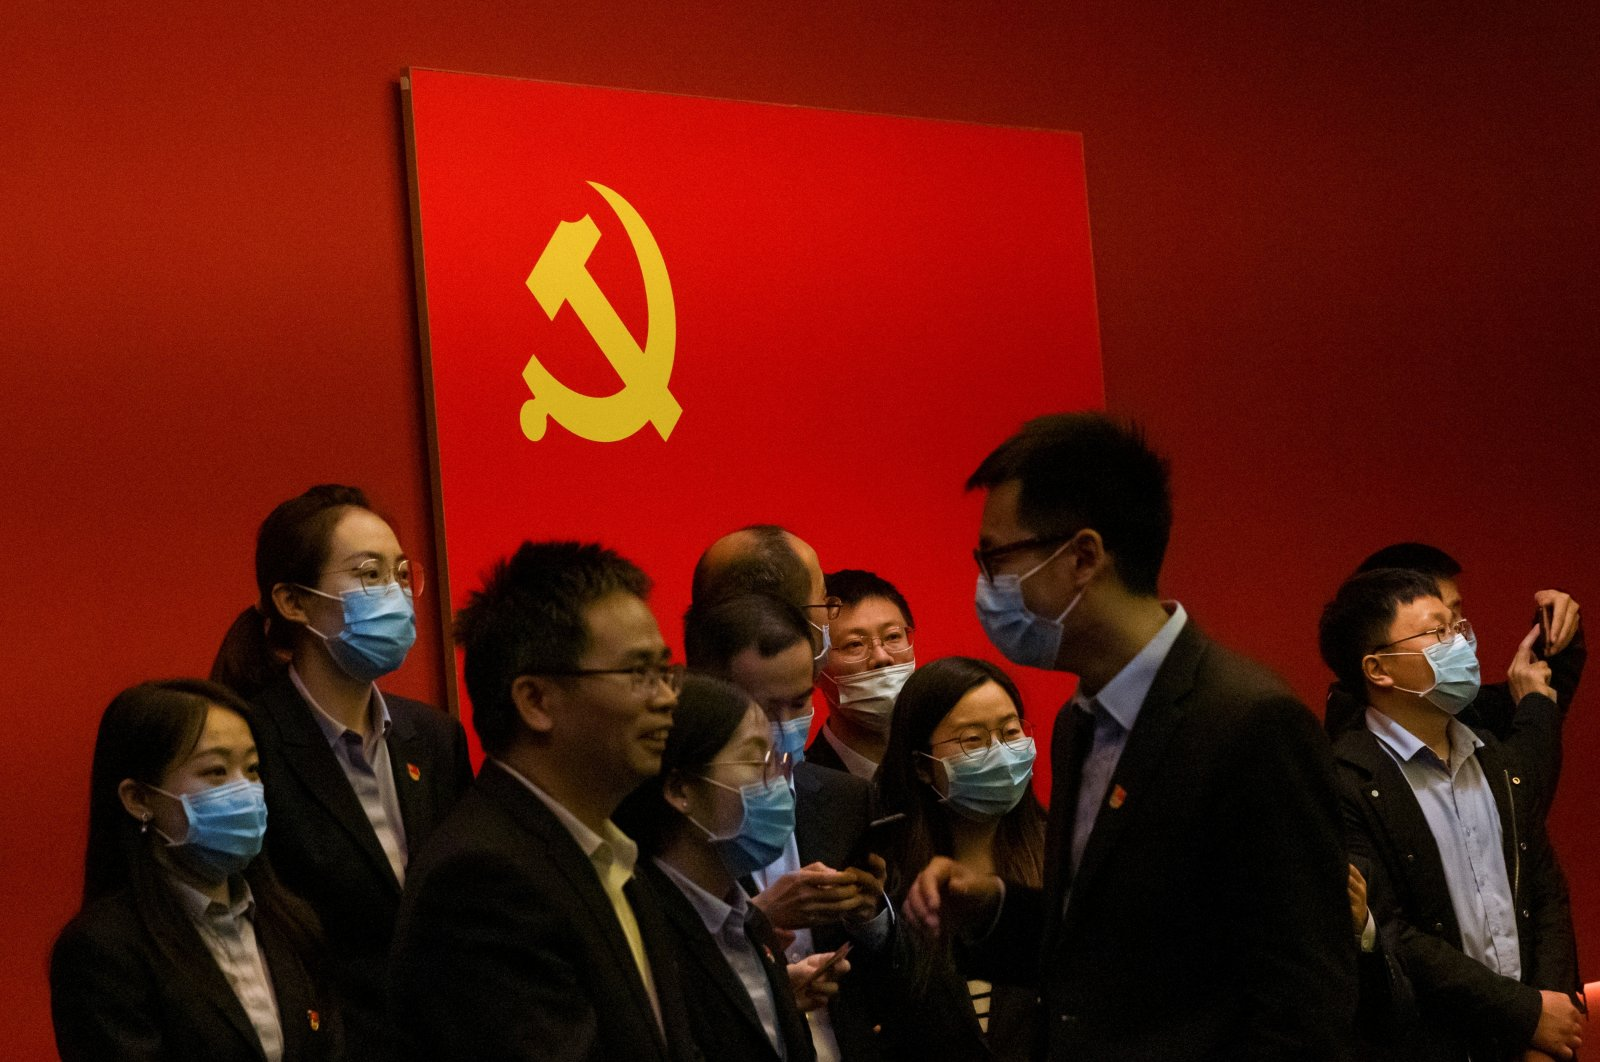 People stand in front of the Chinese national flag at an exhibition marking the 100th founding anniversary of the Chinese Communist Party (CCP) in Beijing, China, April 22, 2021.  REUTERS/Thomas Peter